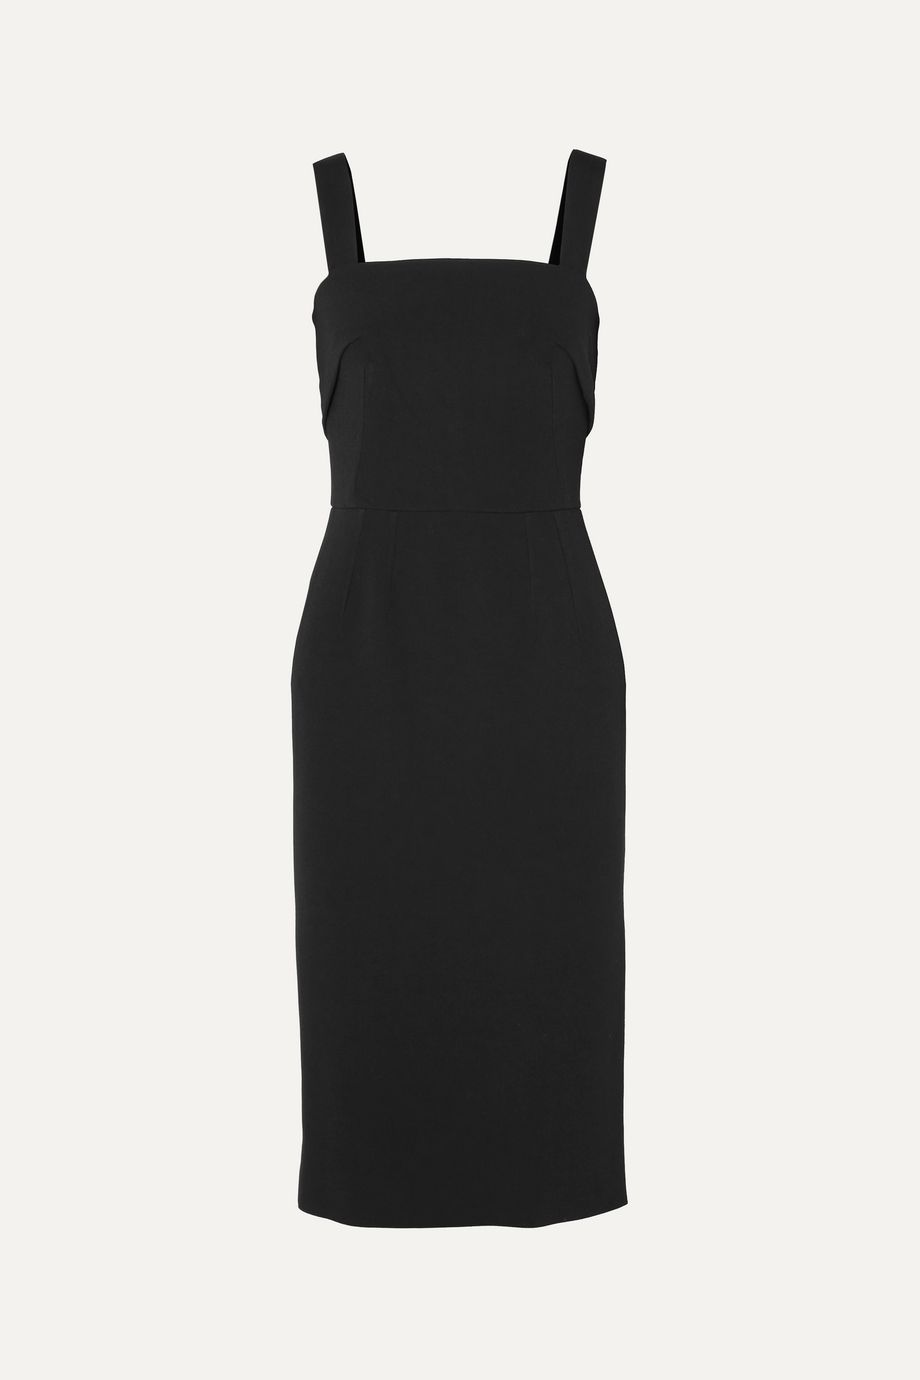 Dolce & Gabbana Crepe midi dress